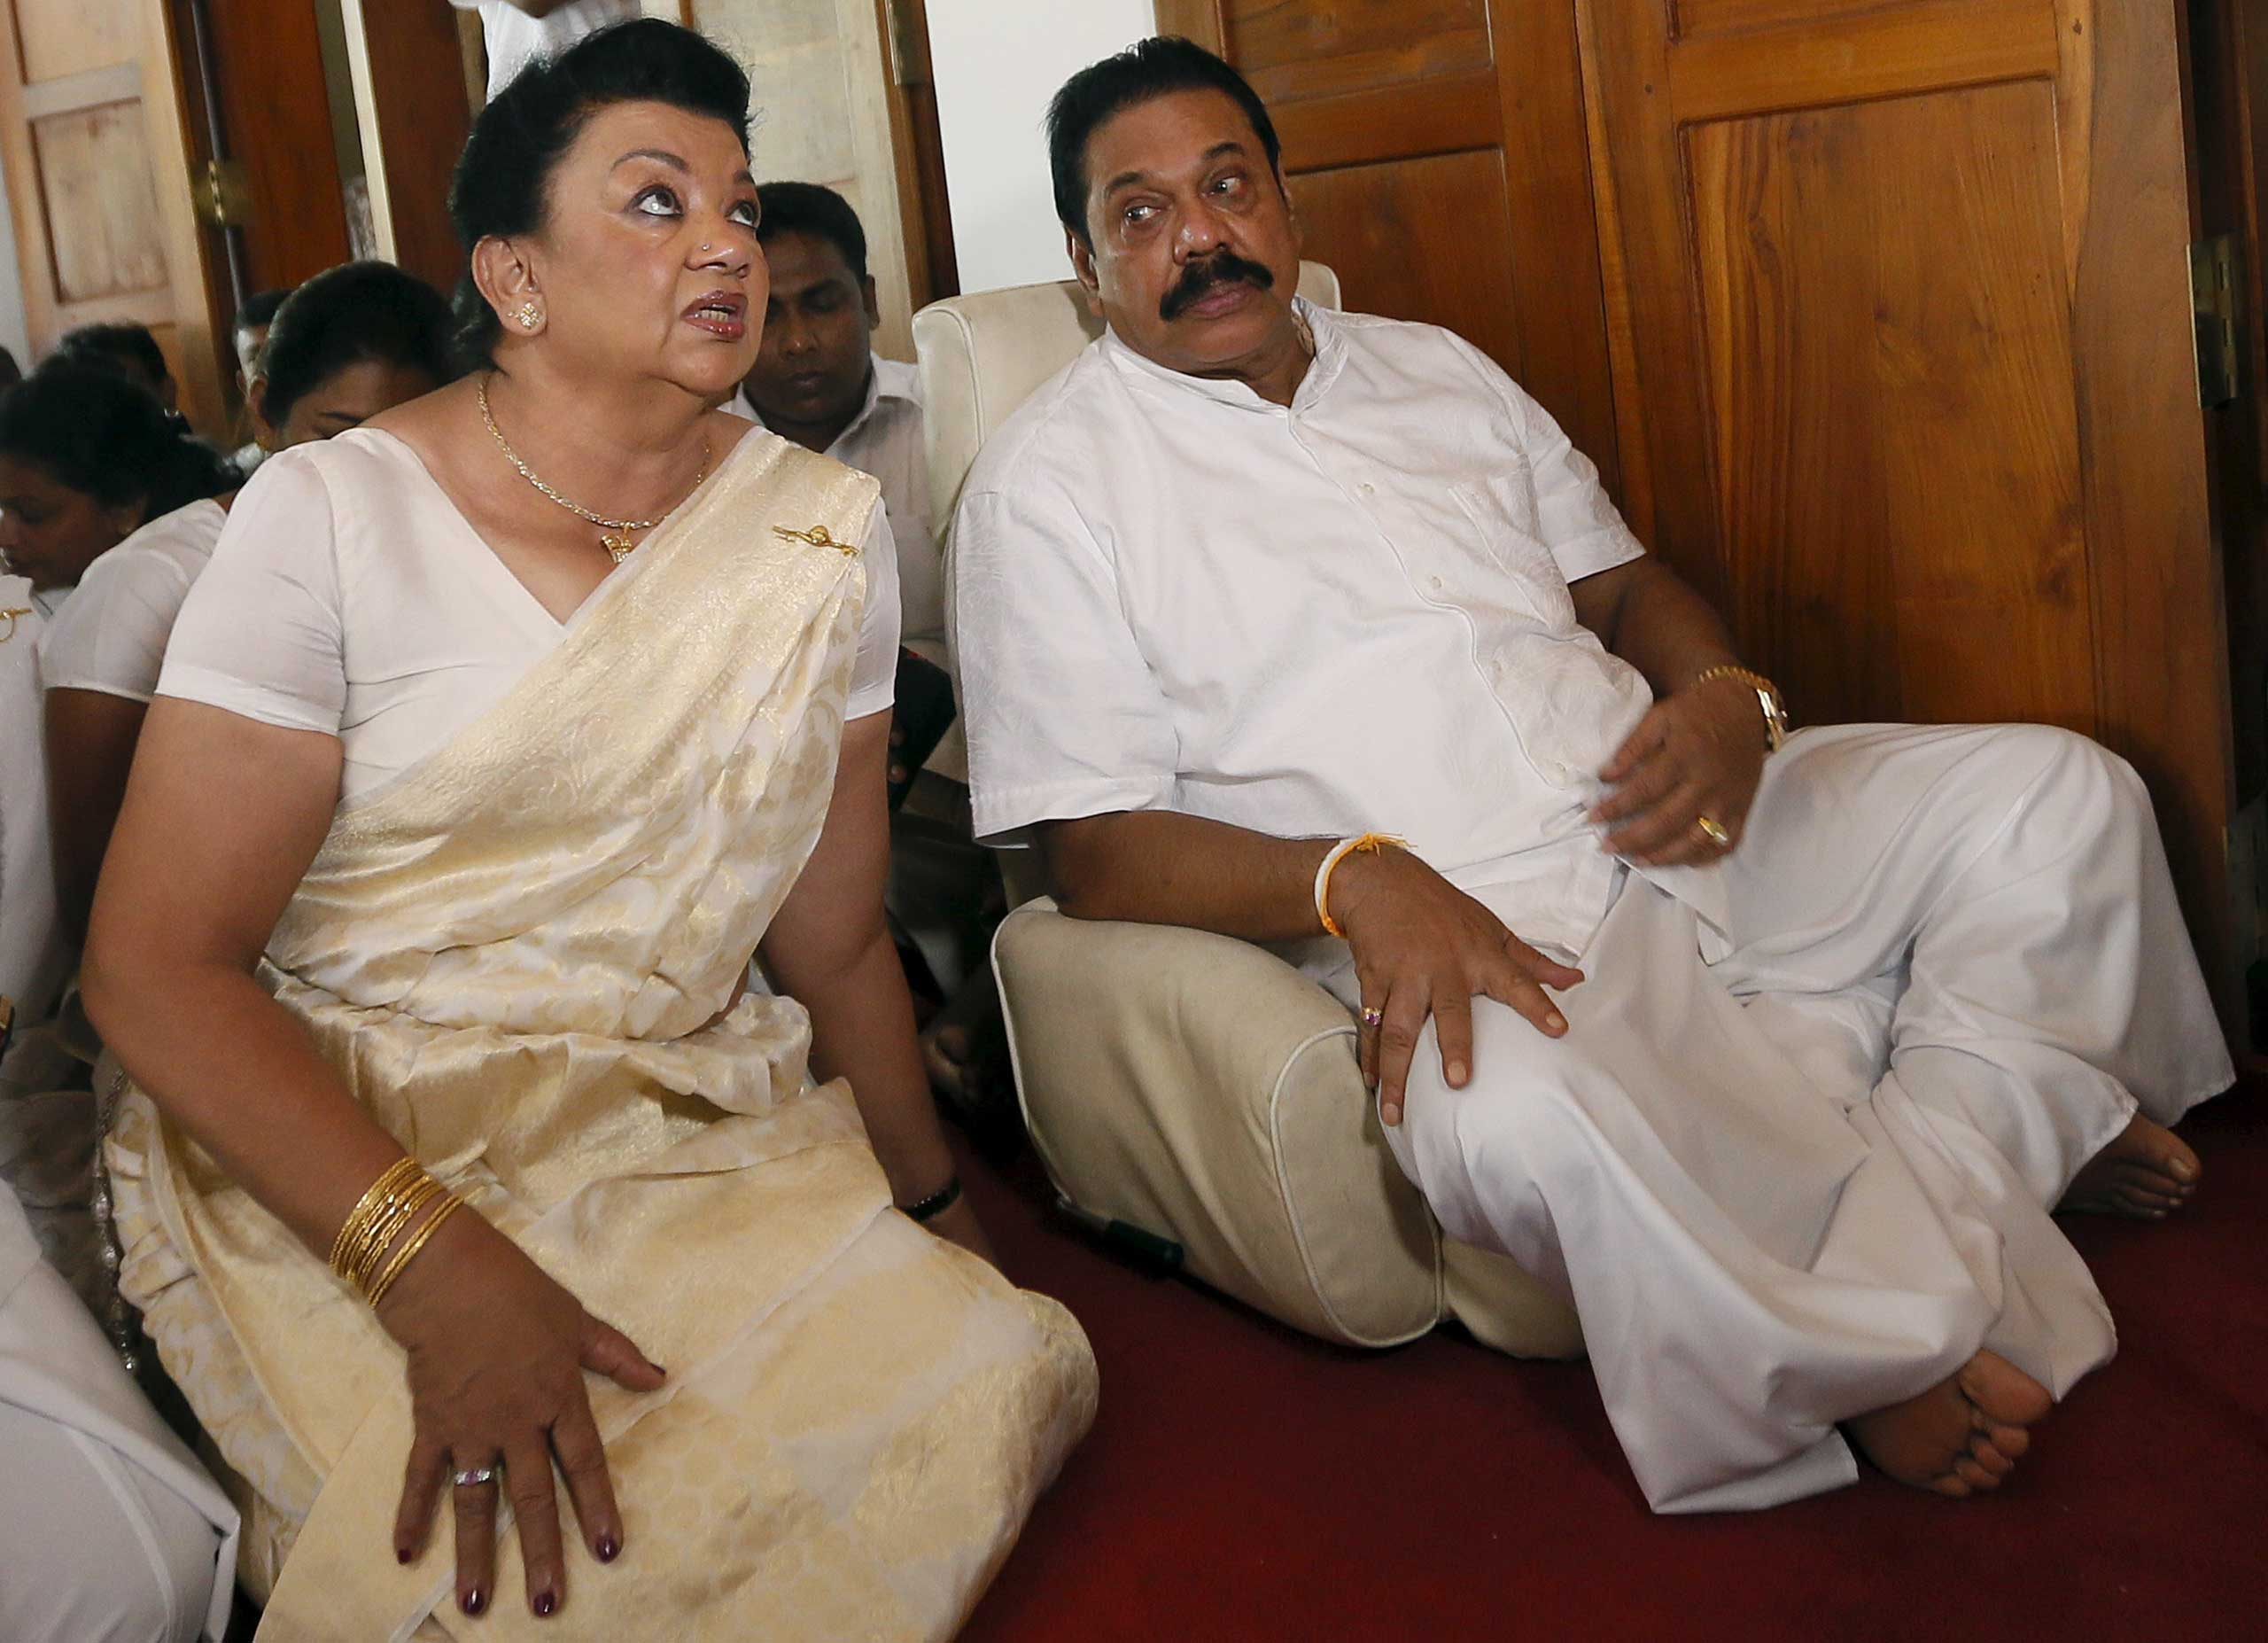 Former Sri Lankan president Mahinda Rajapaksa sits next to his wife Shiranthi Rajapaksa during a religious ceremony at his residence in Medamulana, Sri Lanka, on July 1, 2015.